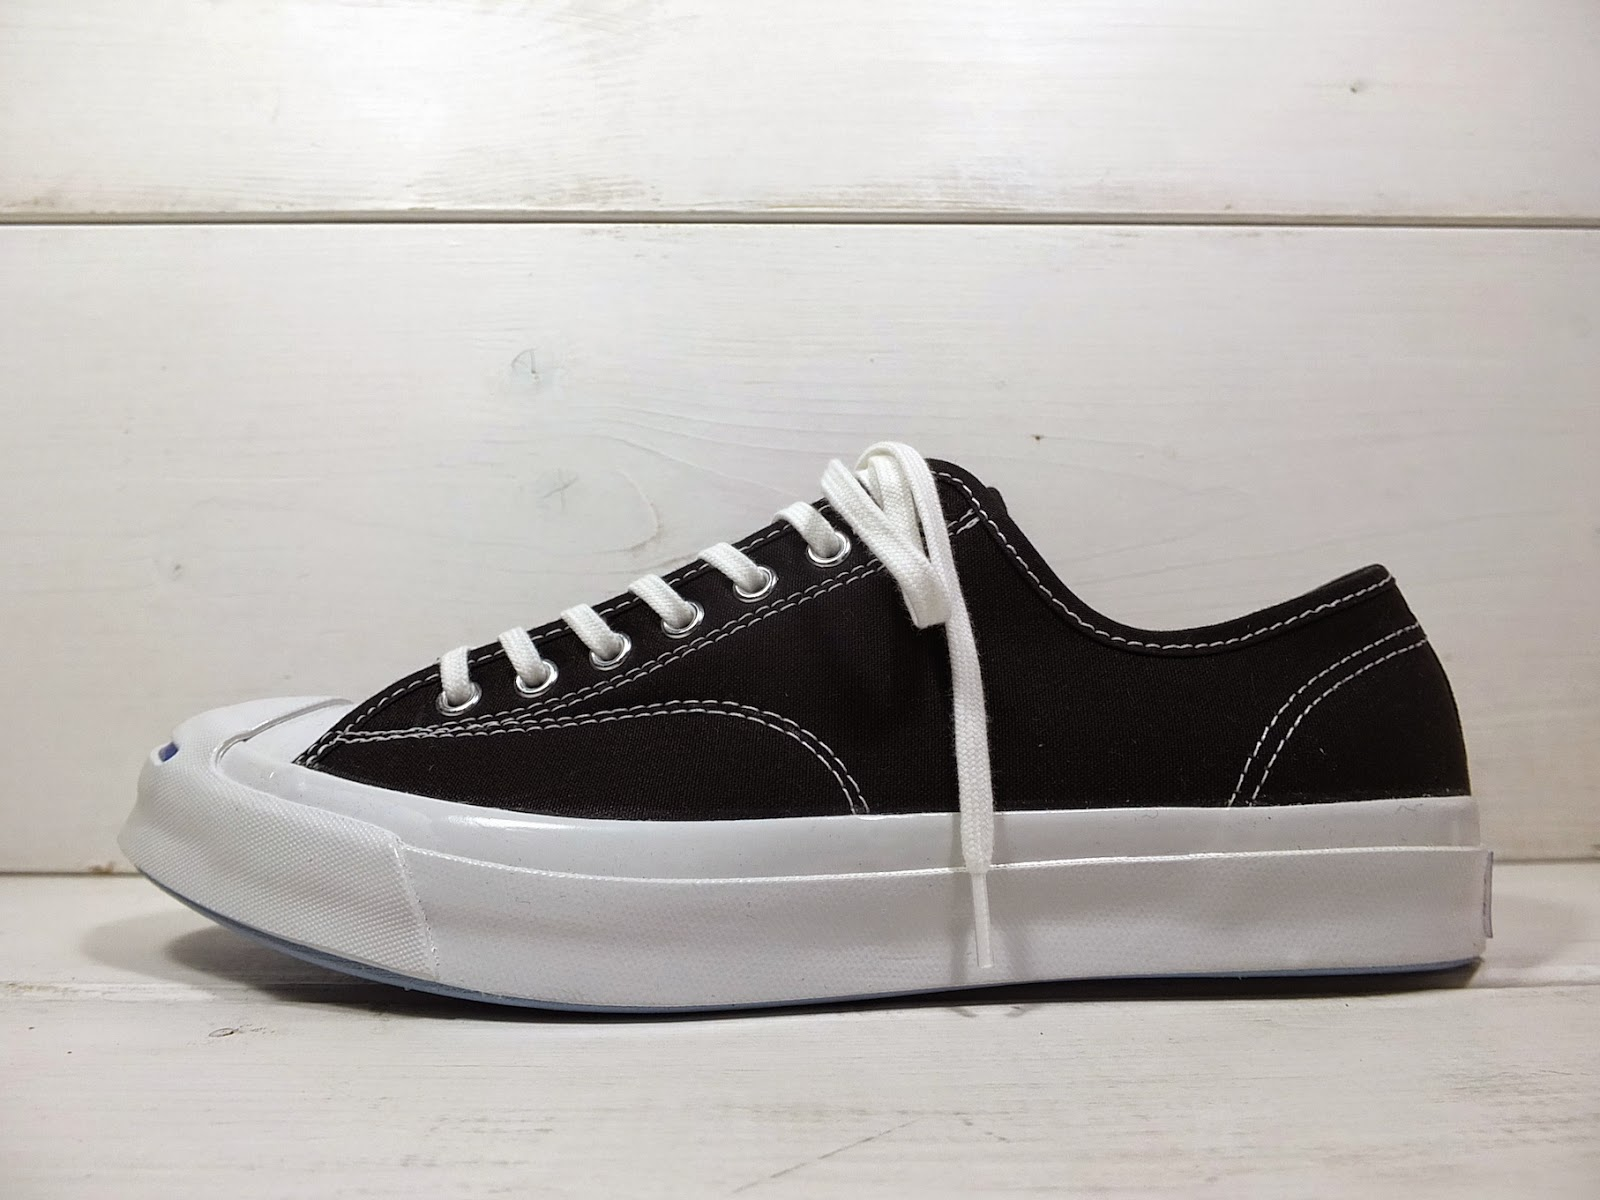 PROCEED Sneakers Amp Supplies Converse Jack Purcell Signature